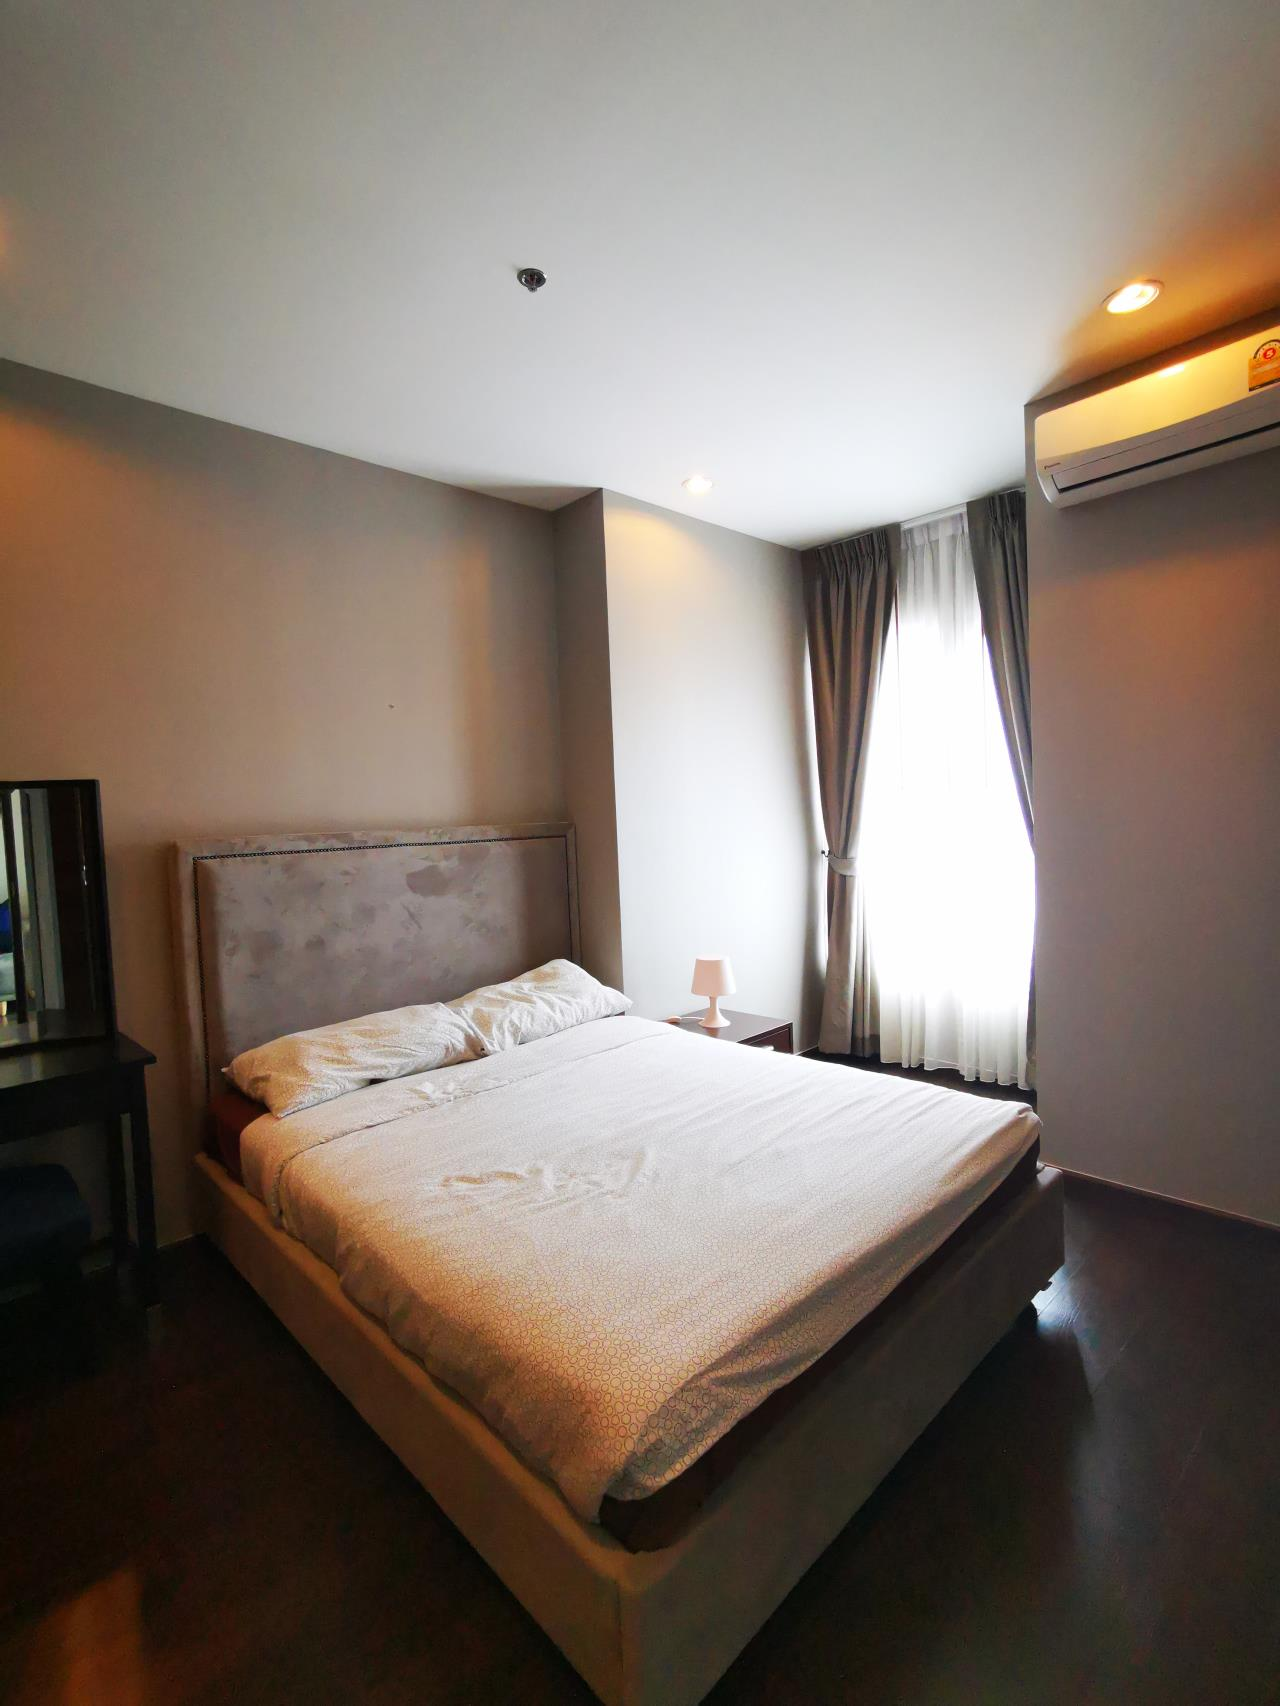 Edman & Partners Co.,Ltd. Agency's 1 Bedroom Condo for rent in C EKKAMAI, Khlong Tan Nuea, Bangkok 7